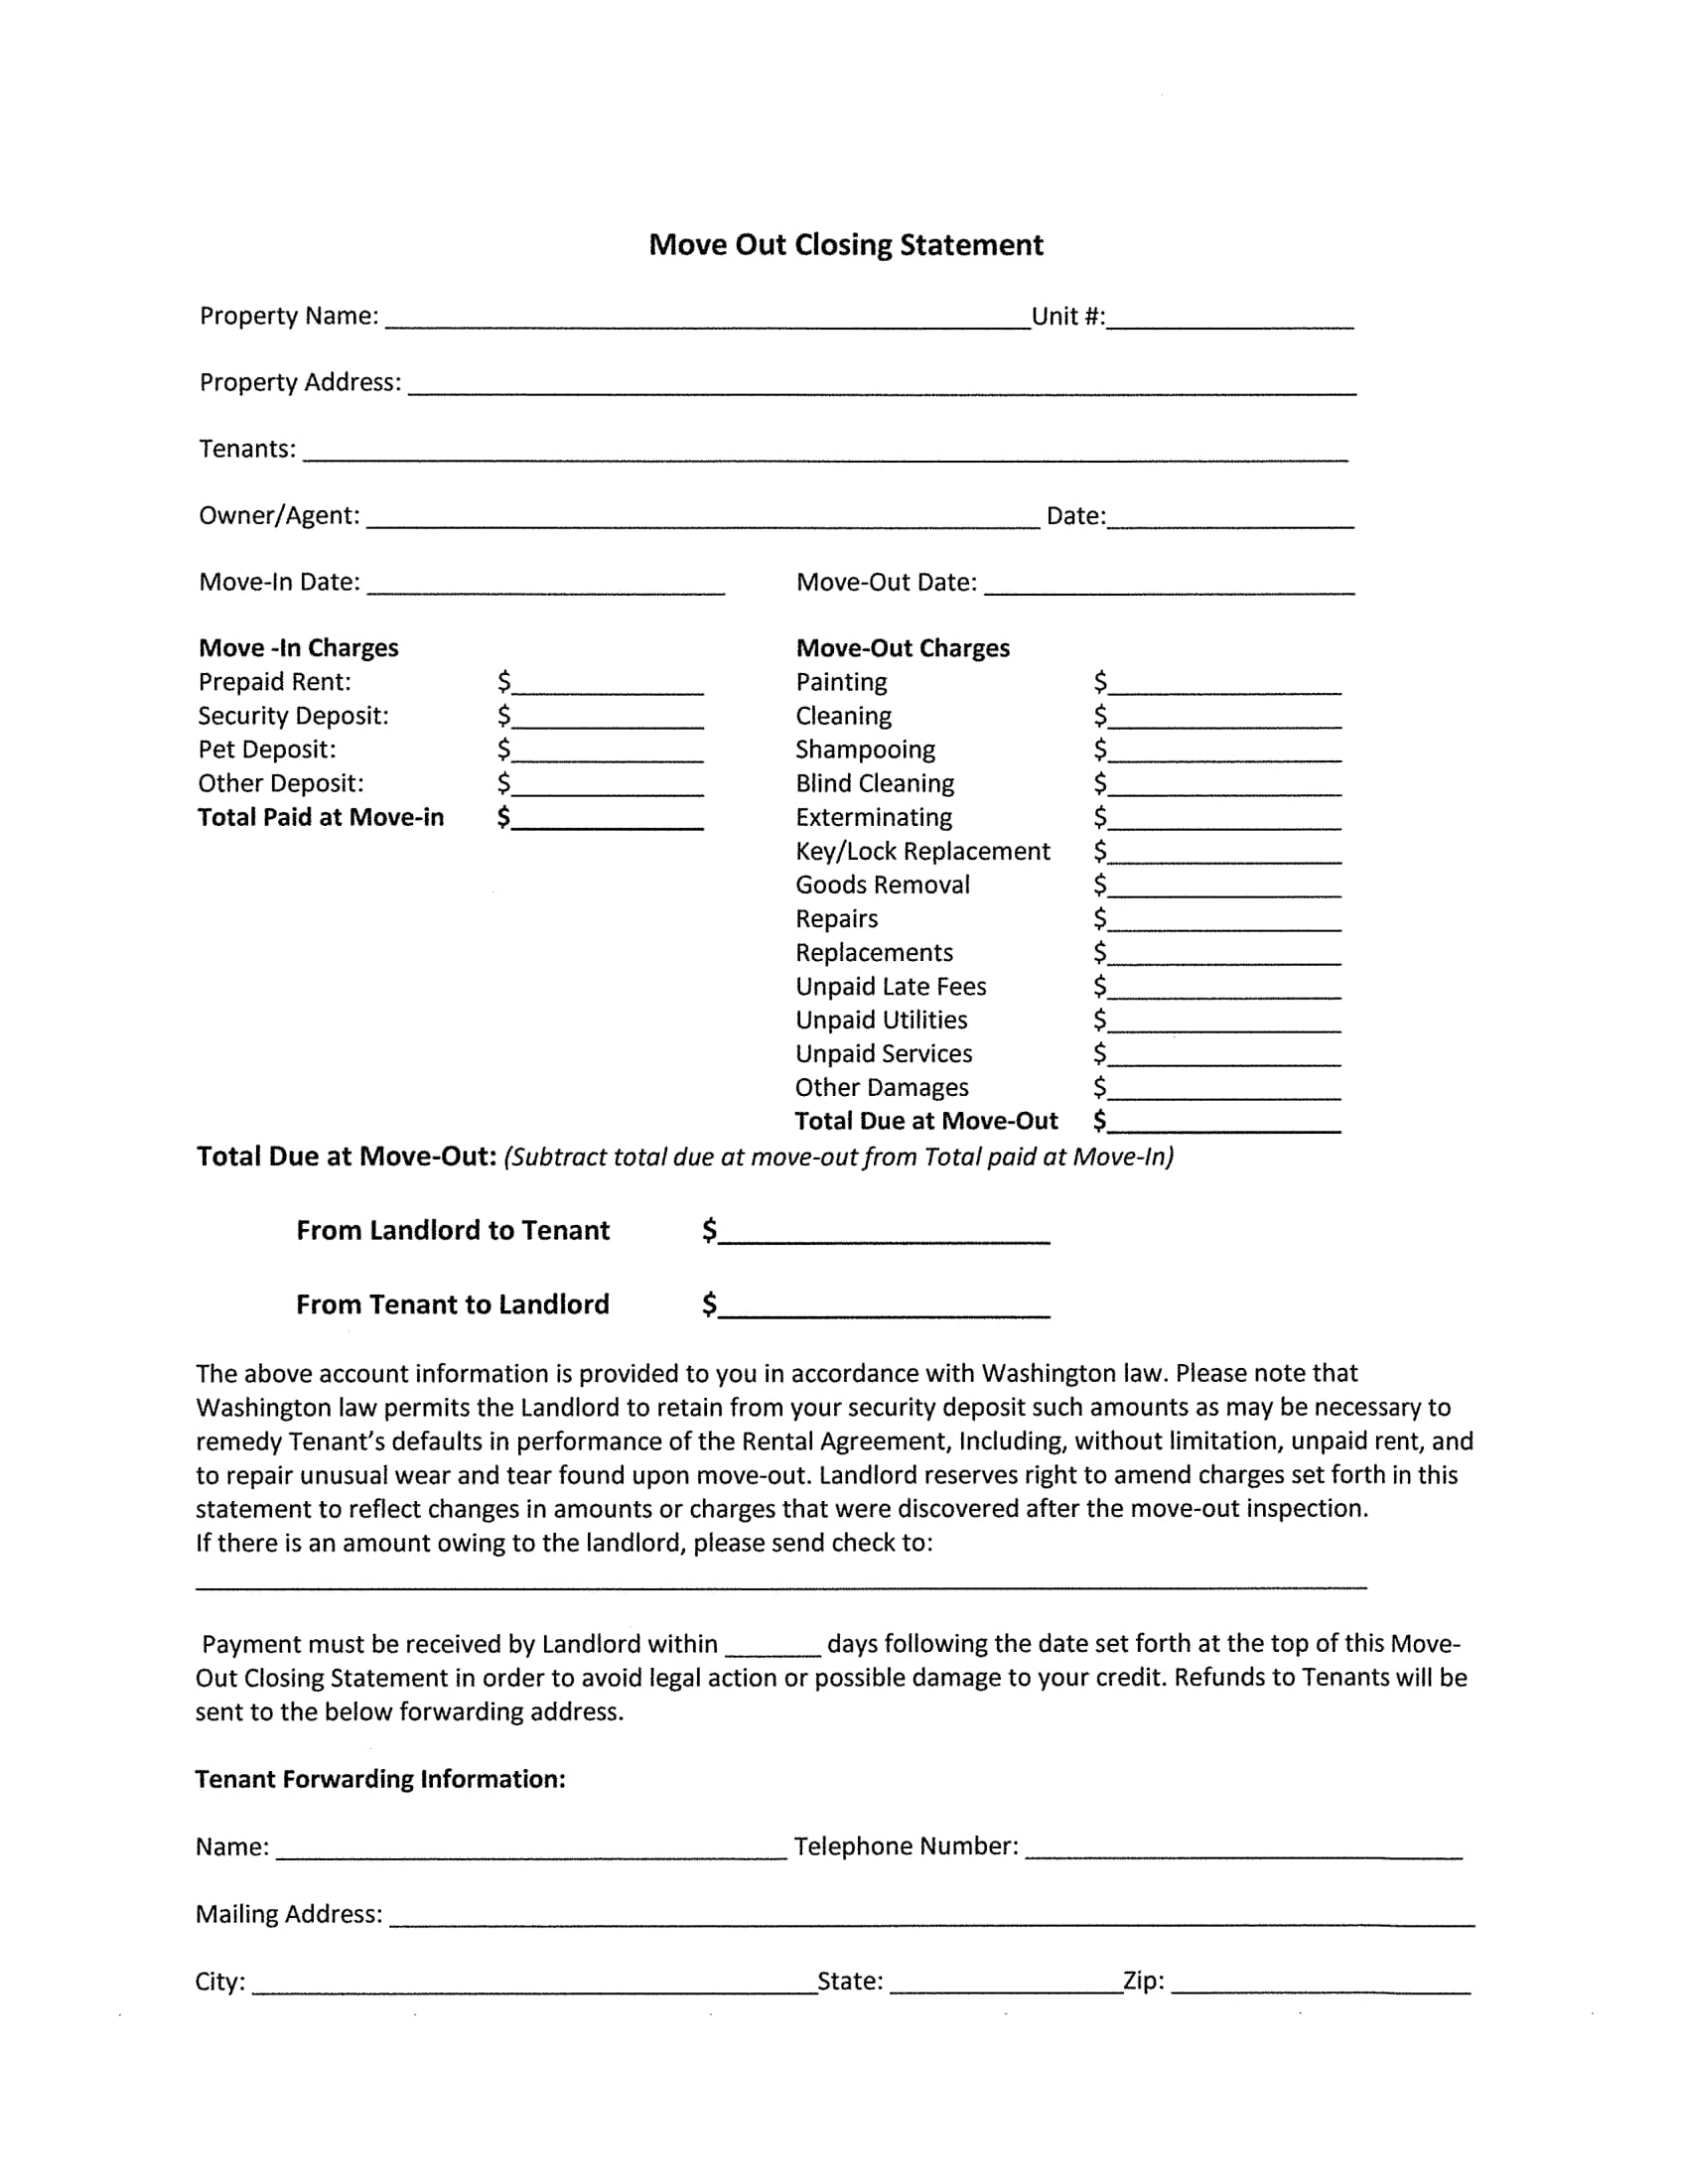 move out closing statement form 1